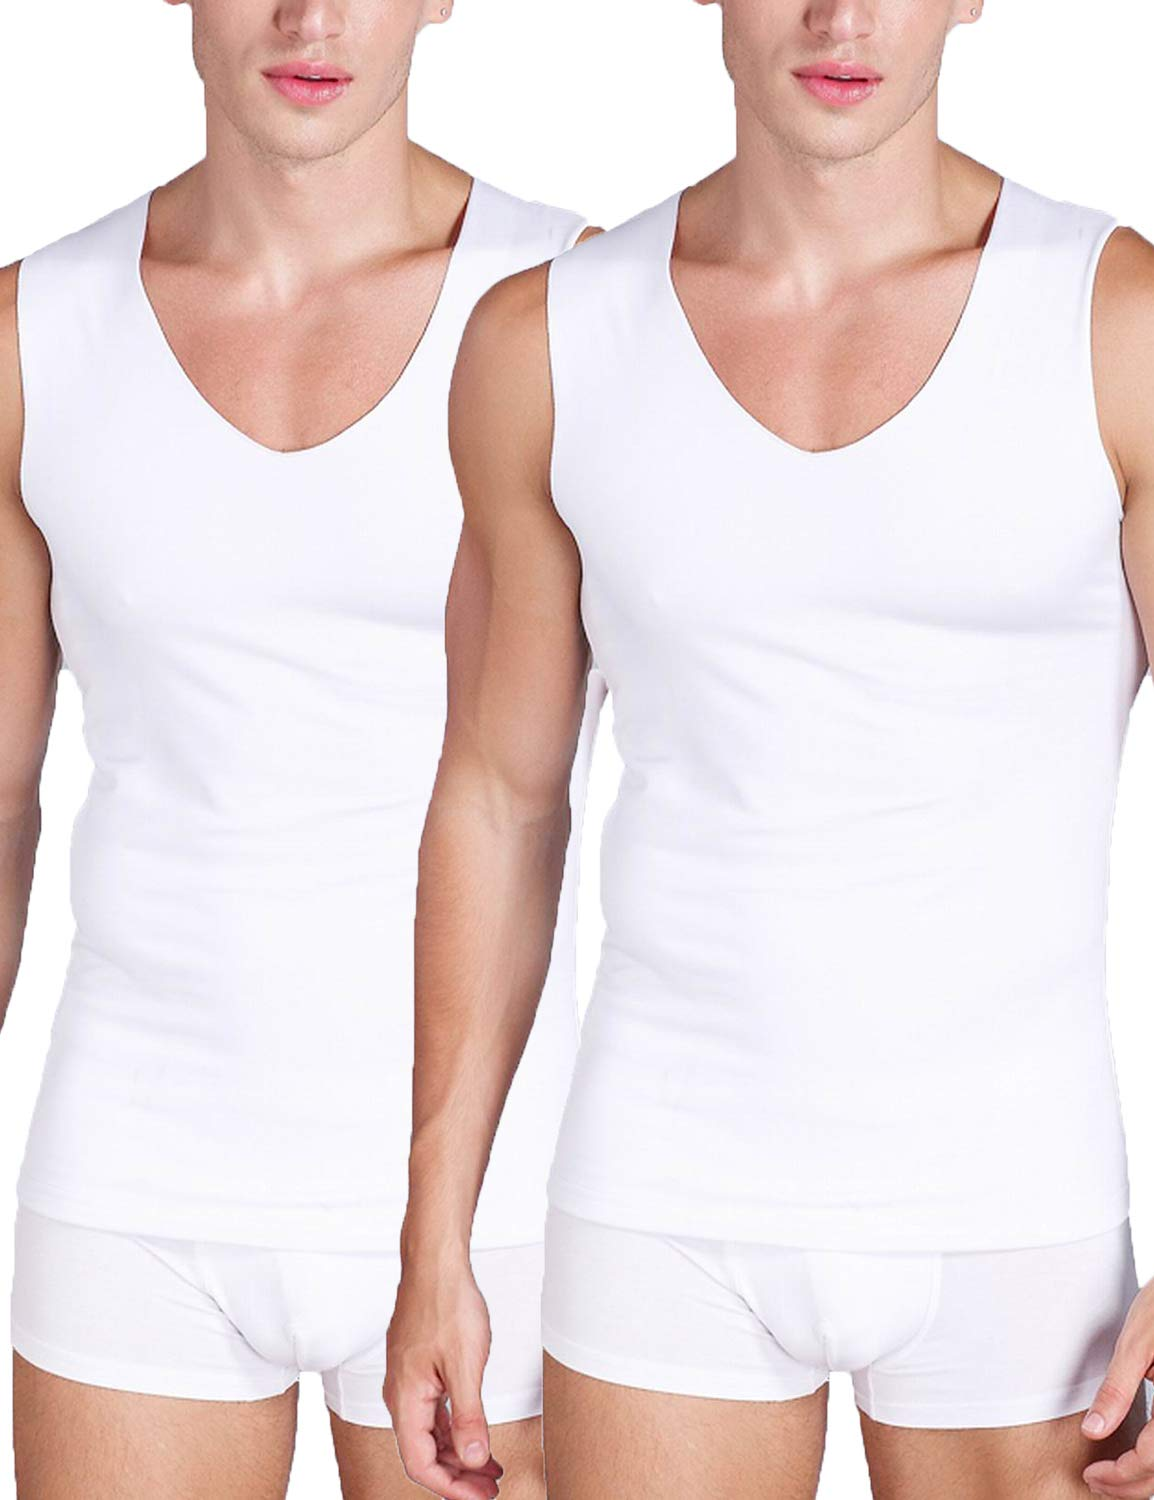 Warmfort Mens 2 Pack Lightweight Elastic ComfortSoft V-Neck Seamless Thermal Tank Top Sleeveless Undershirts with Fleece Lined (White-2PC, L) by Warmfort